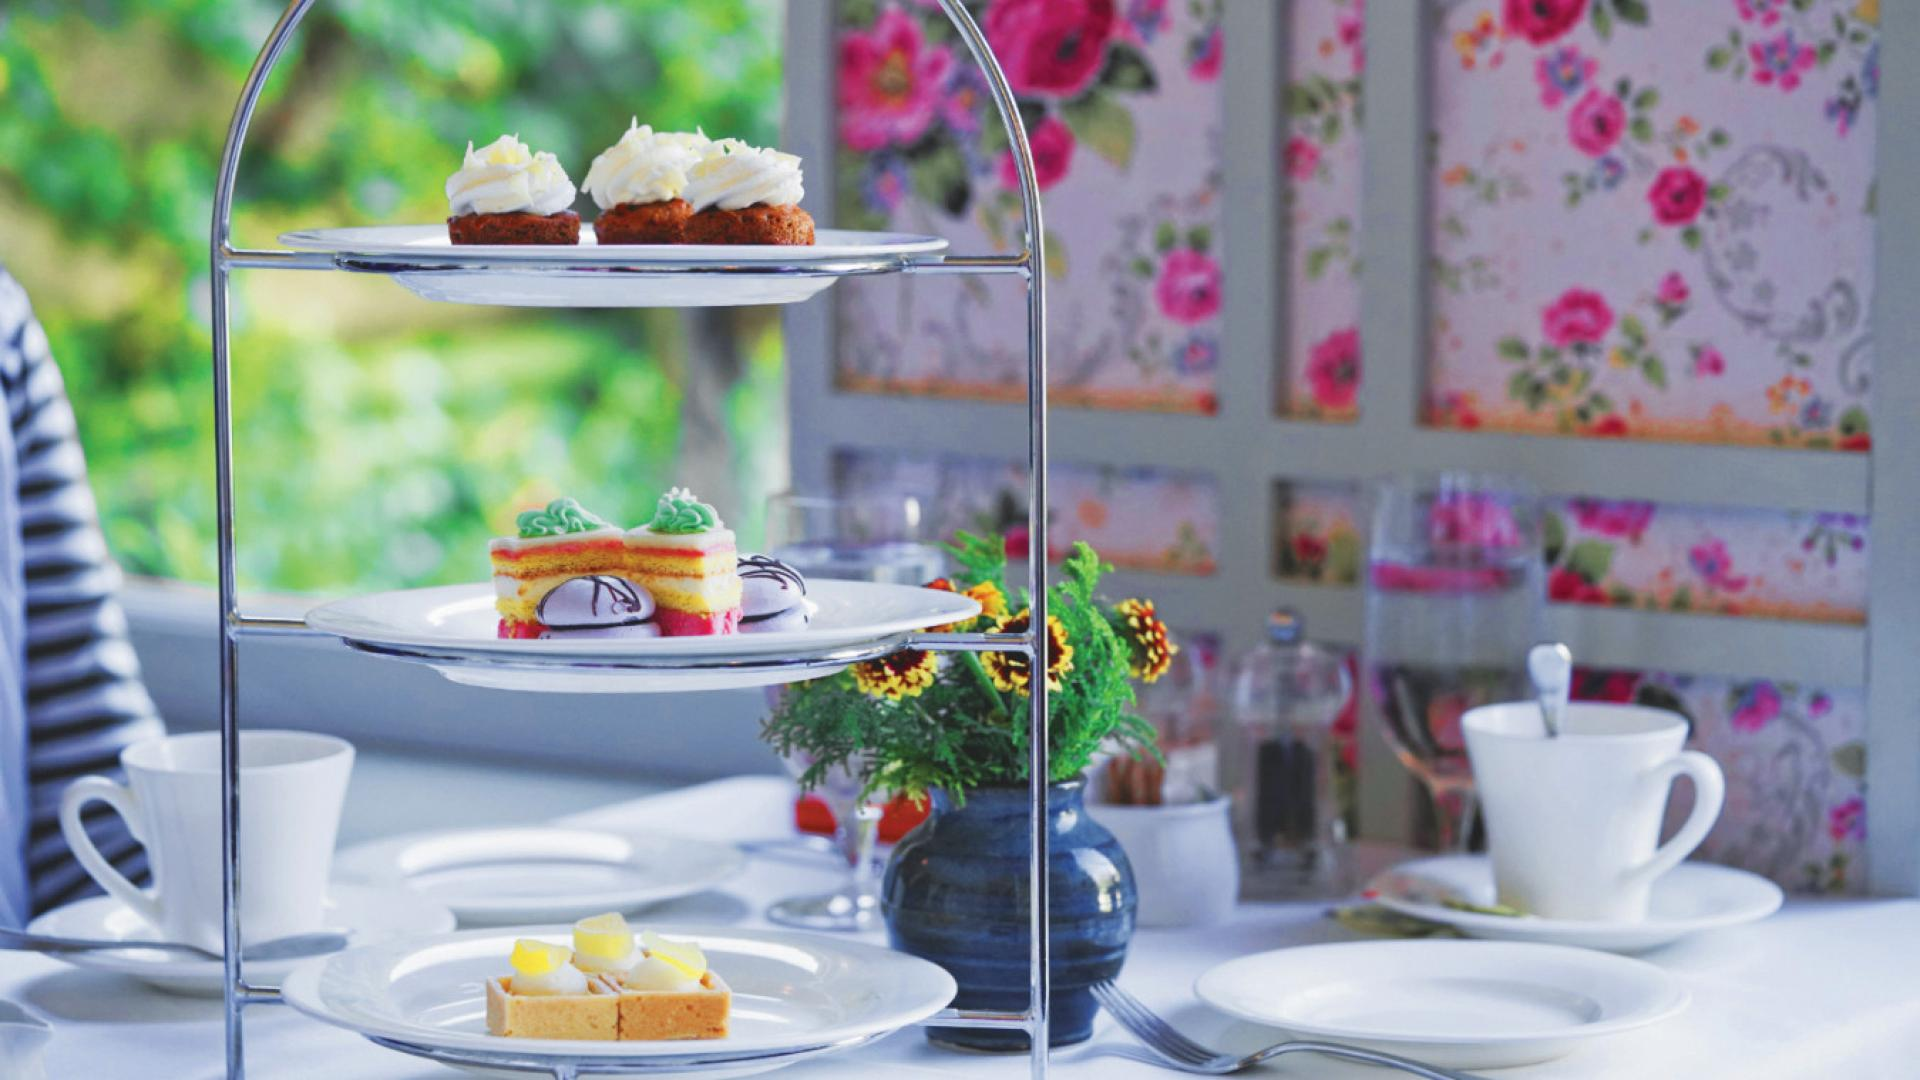 Where to have high tea in Victoria, B.C.: Butchart Gardens